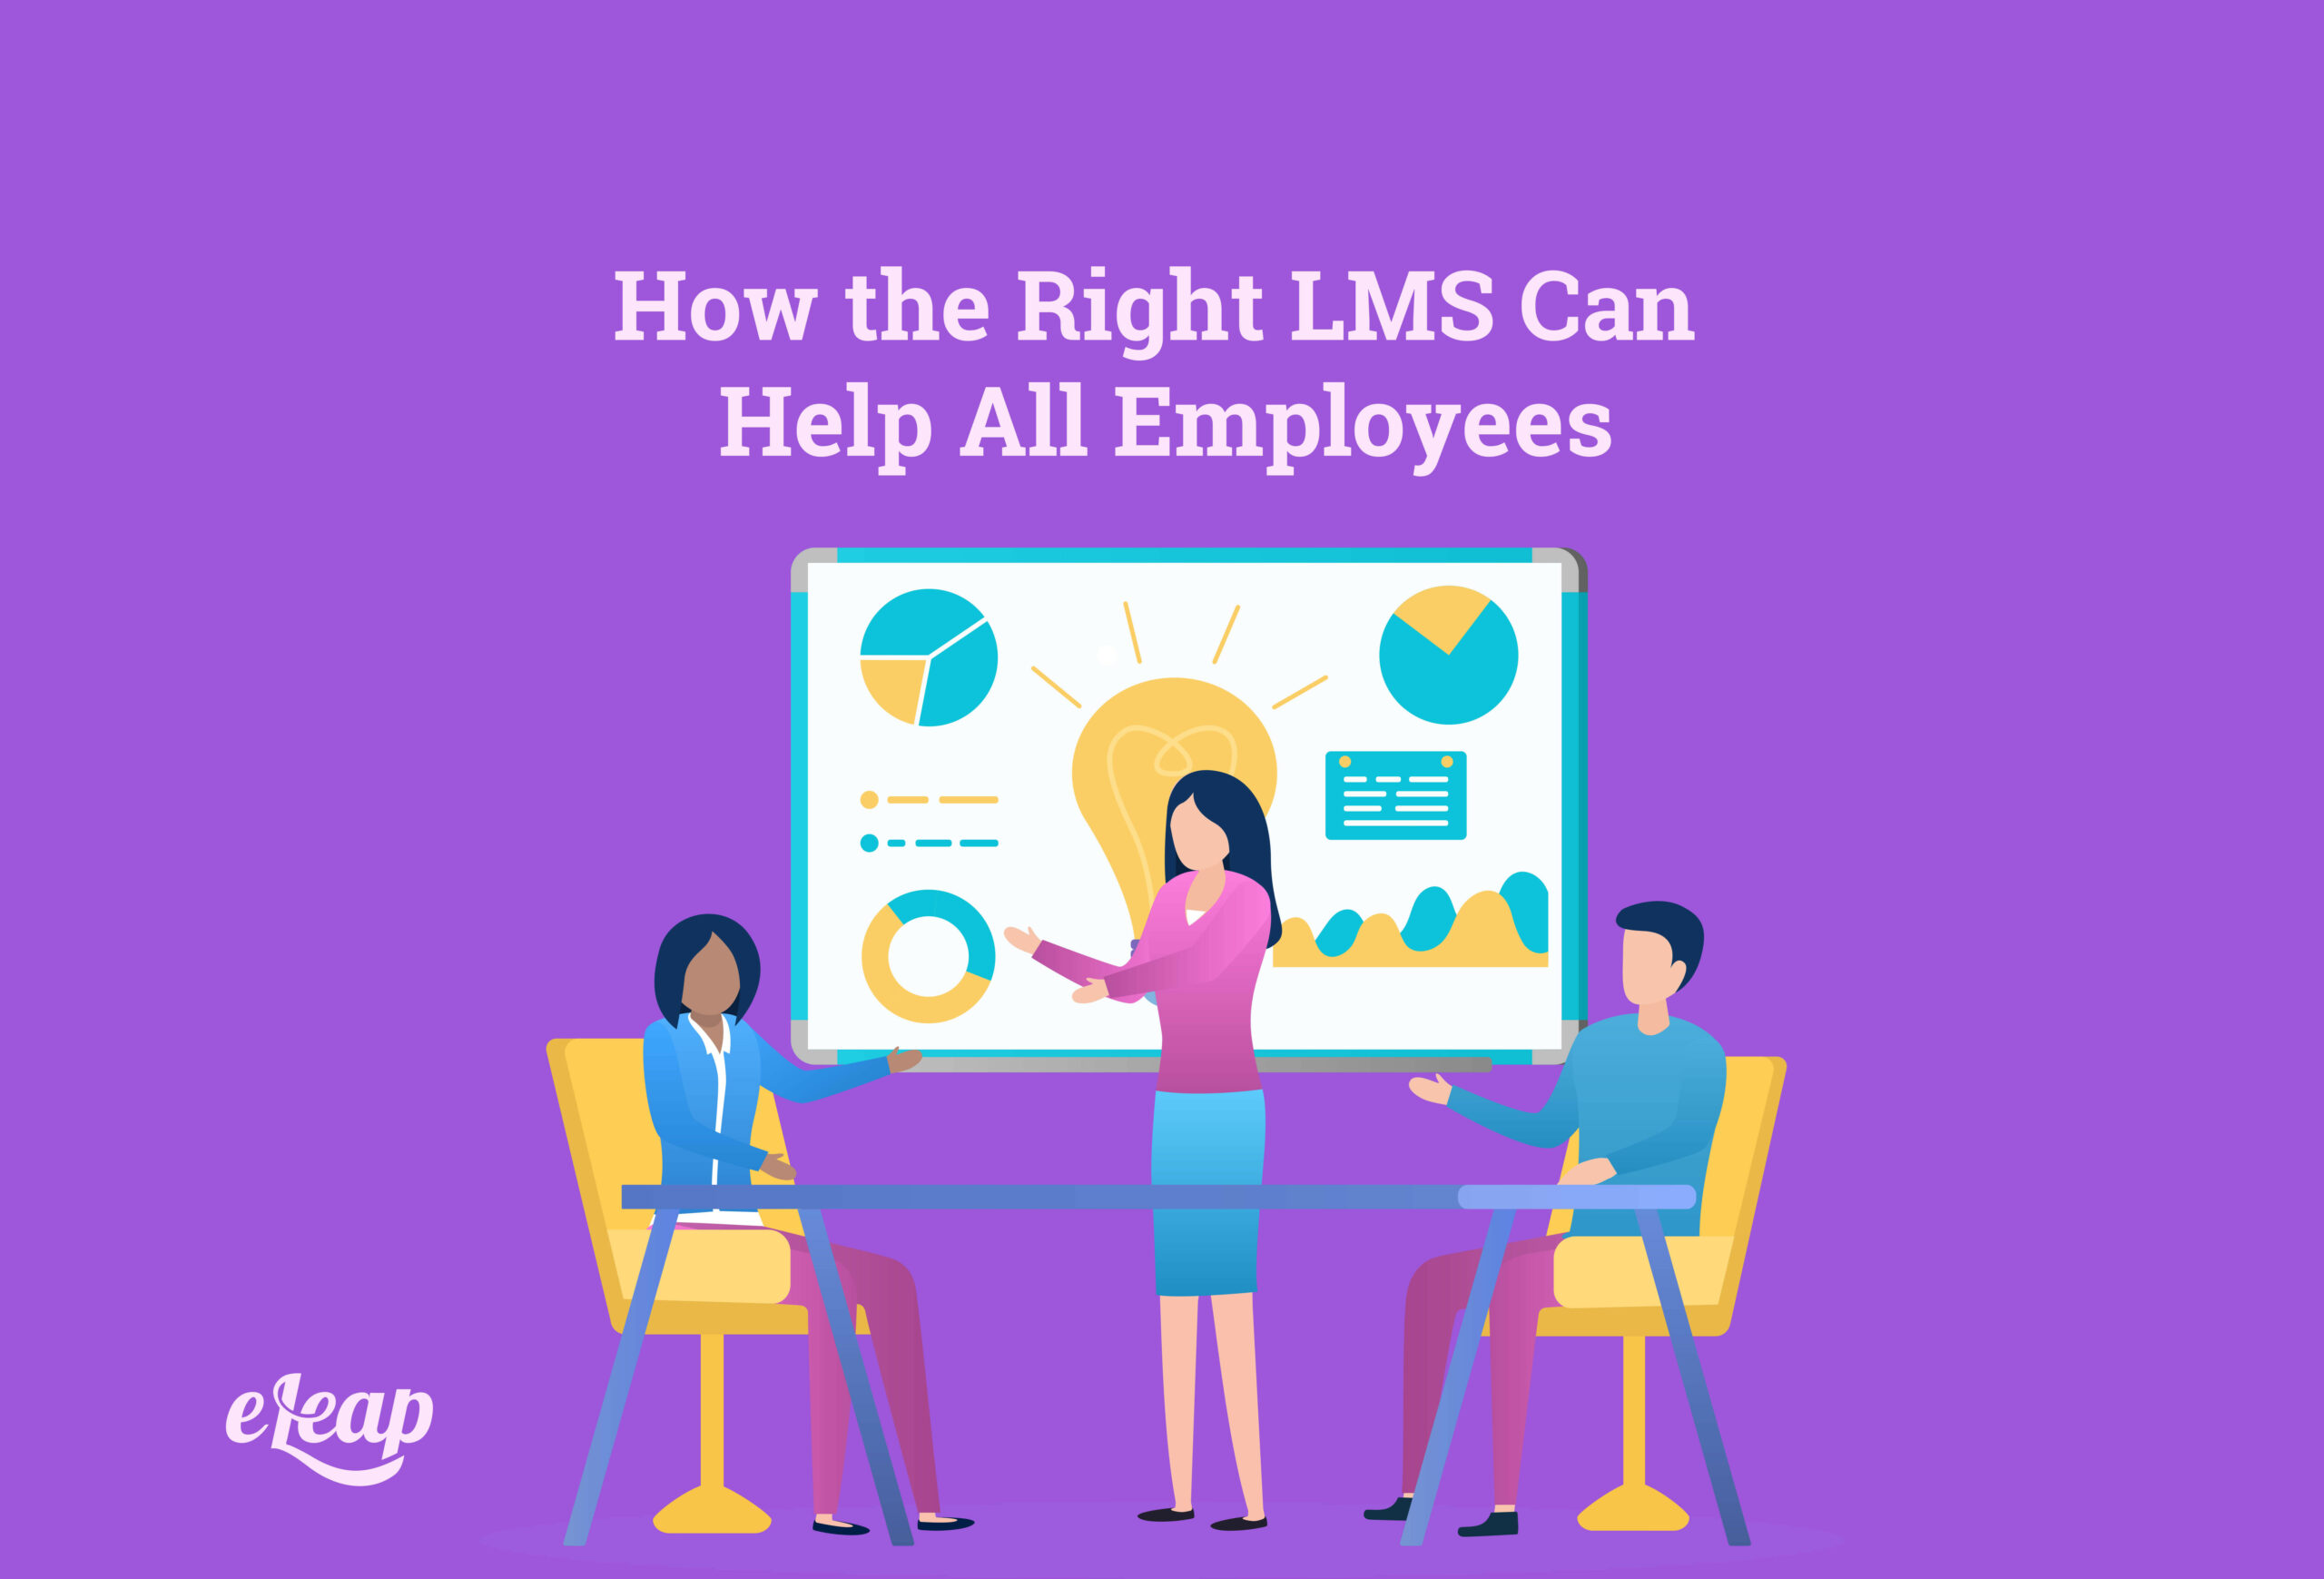 How the Right LMS Can Help All Employees